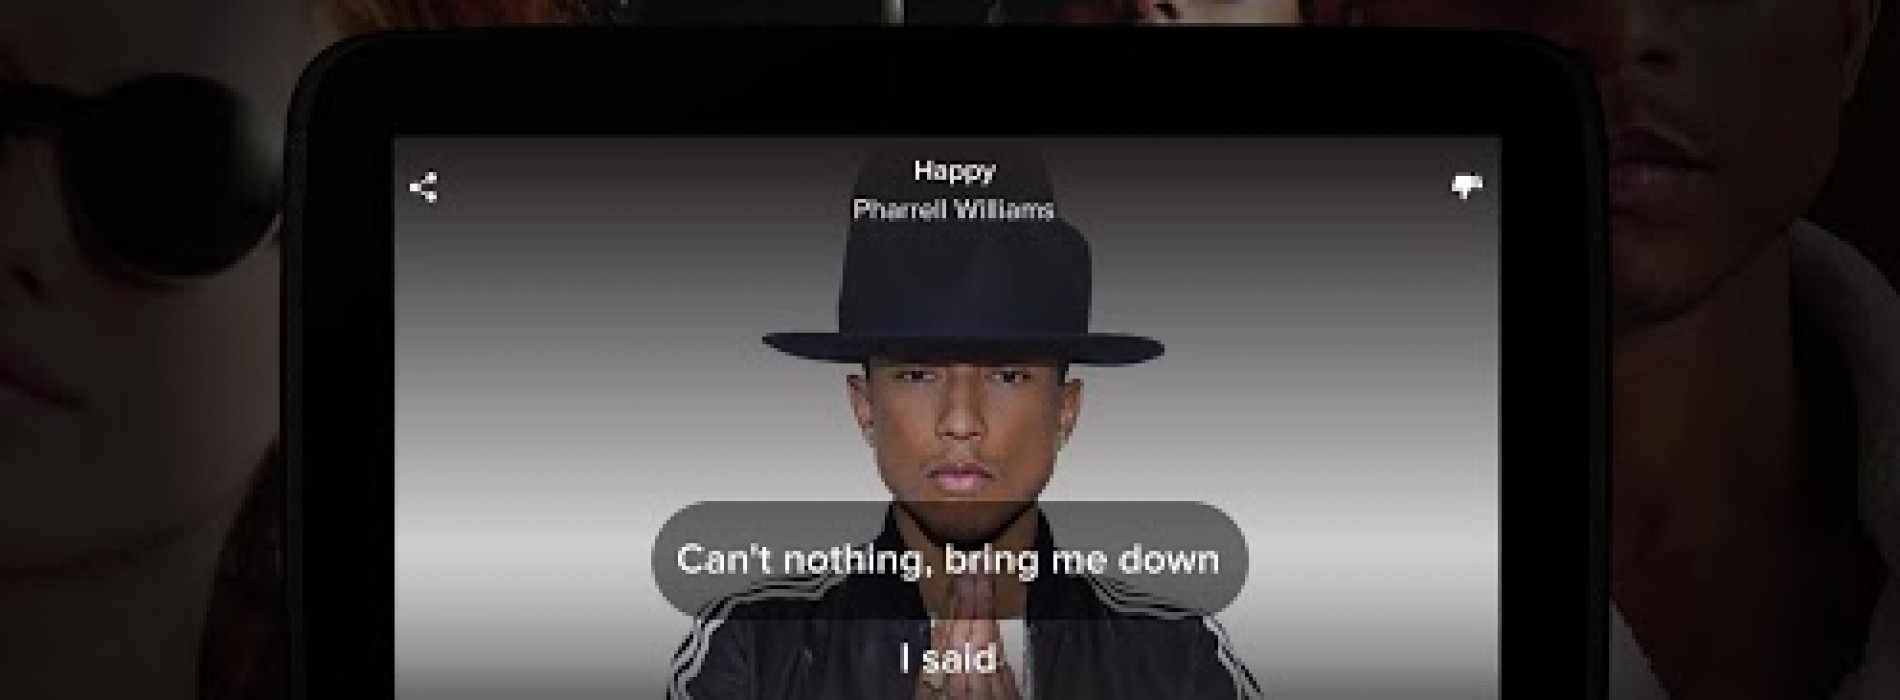 Get the lyrics to your favorite songs with musiXmatch [App of the Day]